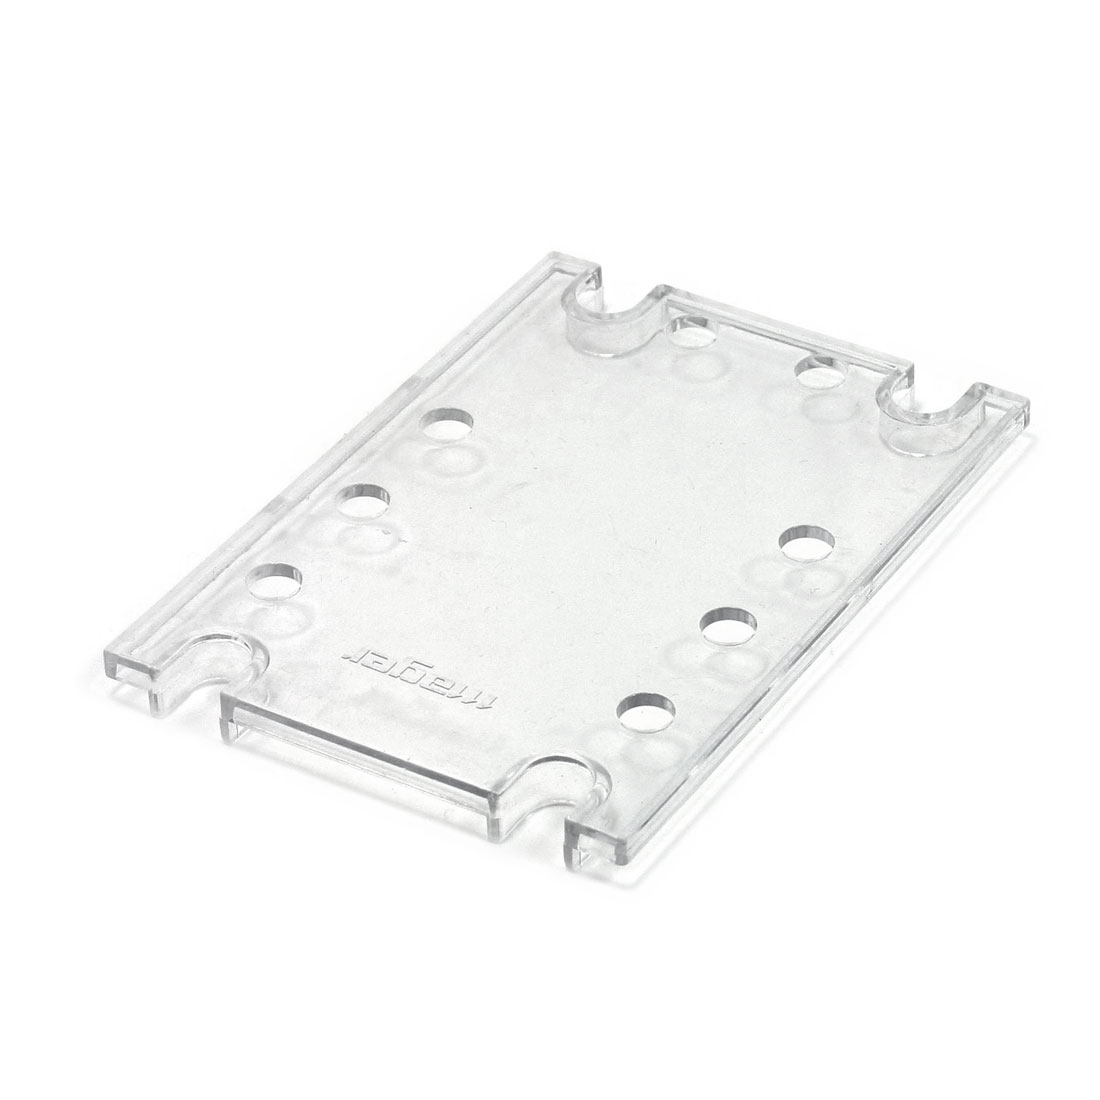 Replacement 3 Phase Solid State Relay Protector Cover Case